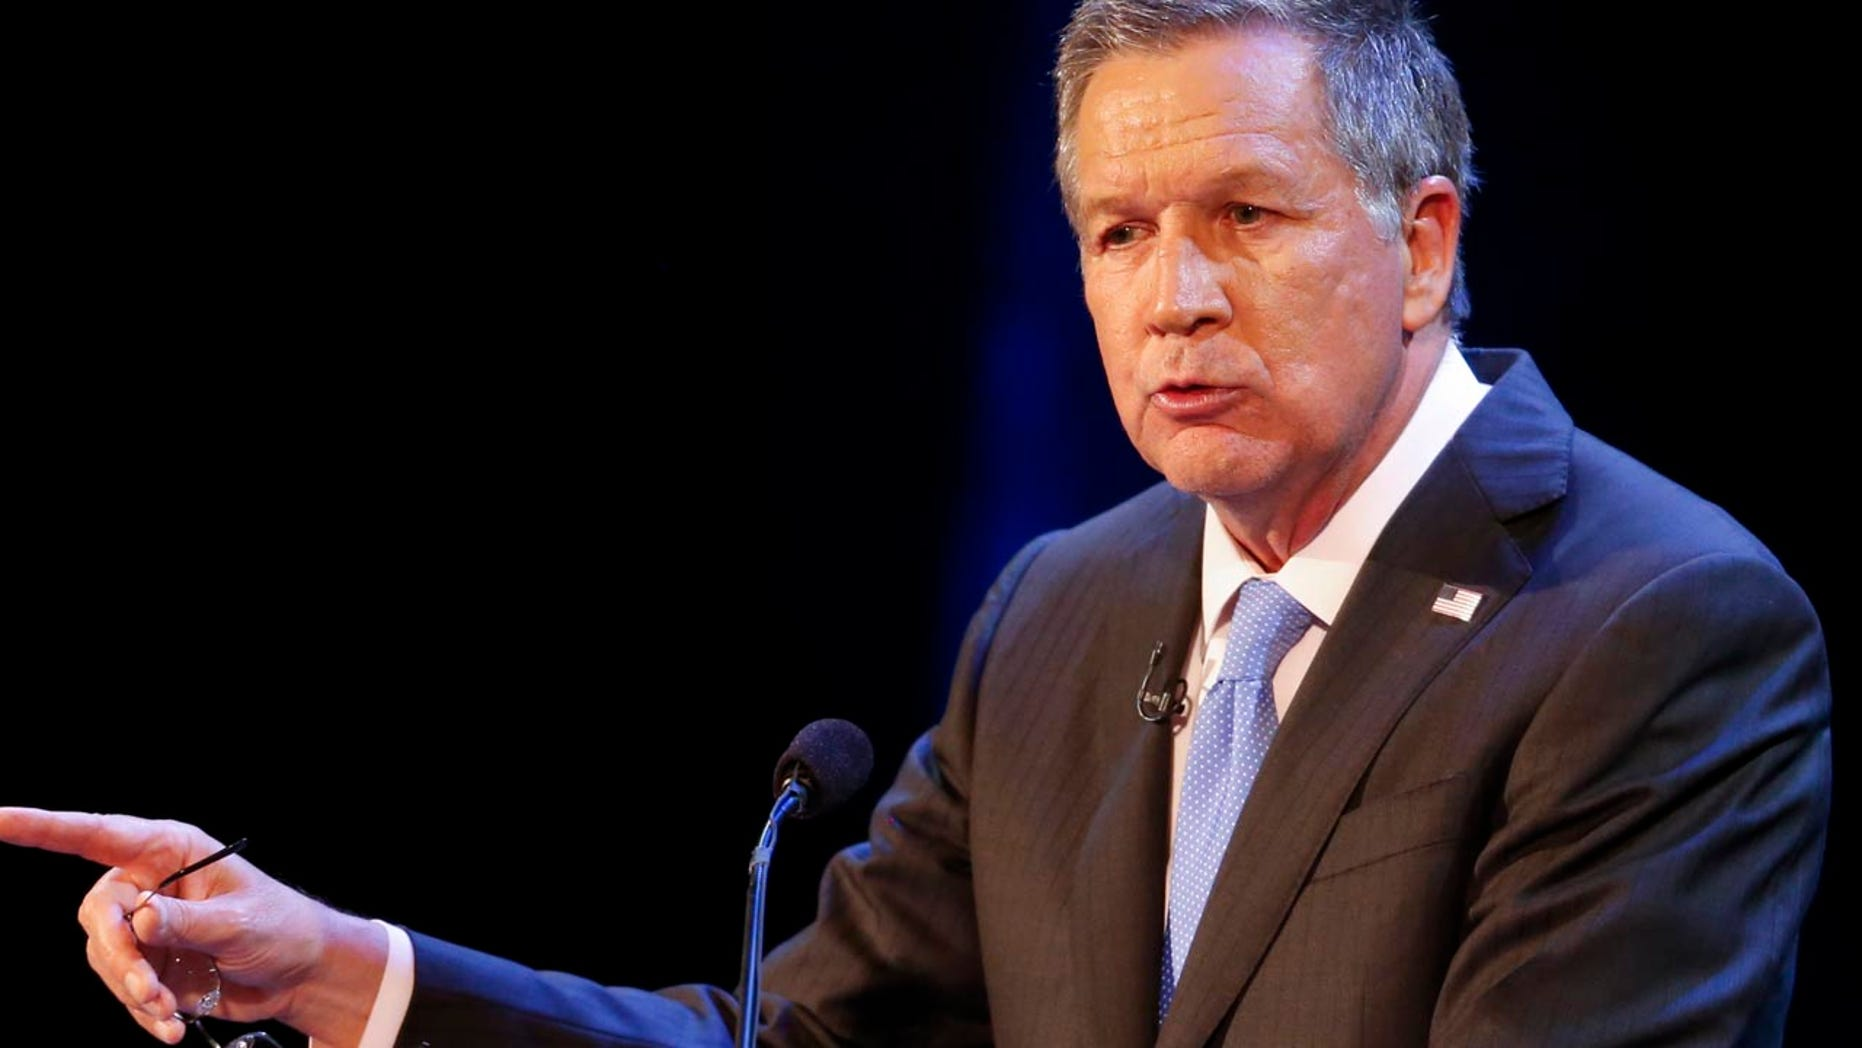 FILE - In this April 4, 2017 file photo, Ohio Gov. John Kasich speaks in Sandusky, Ohio. Kasich is joining friend and ex-California Gov. Arnold Schwarzenegger in his effort to overhaul partisan political map-making that's helped fuel their Republican party's rise to power. Kasich said Tuesday, Sept. 5, 2017, he's signed a legal brief that opposes the GOP in the momentous redistricting case being heard by the U.S. Supreme Court this fall. He says other signers include Republicans John McCain and Bob Dole. (AP Photo/Ron Schwane, File)